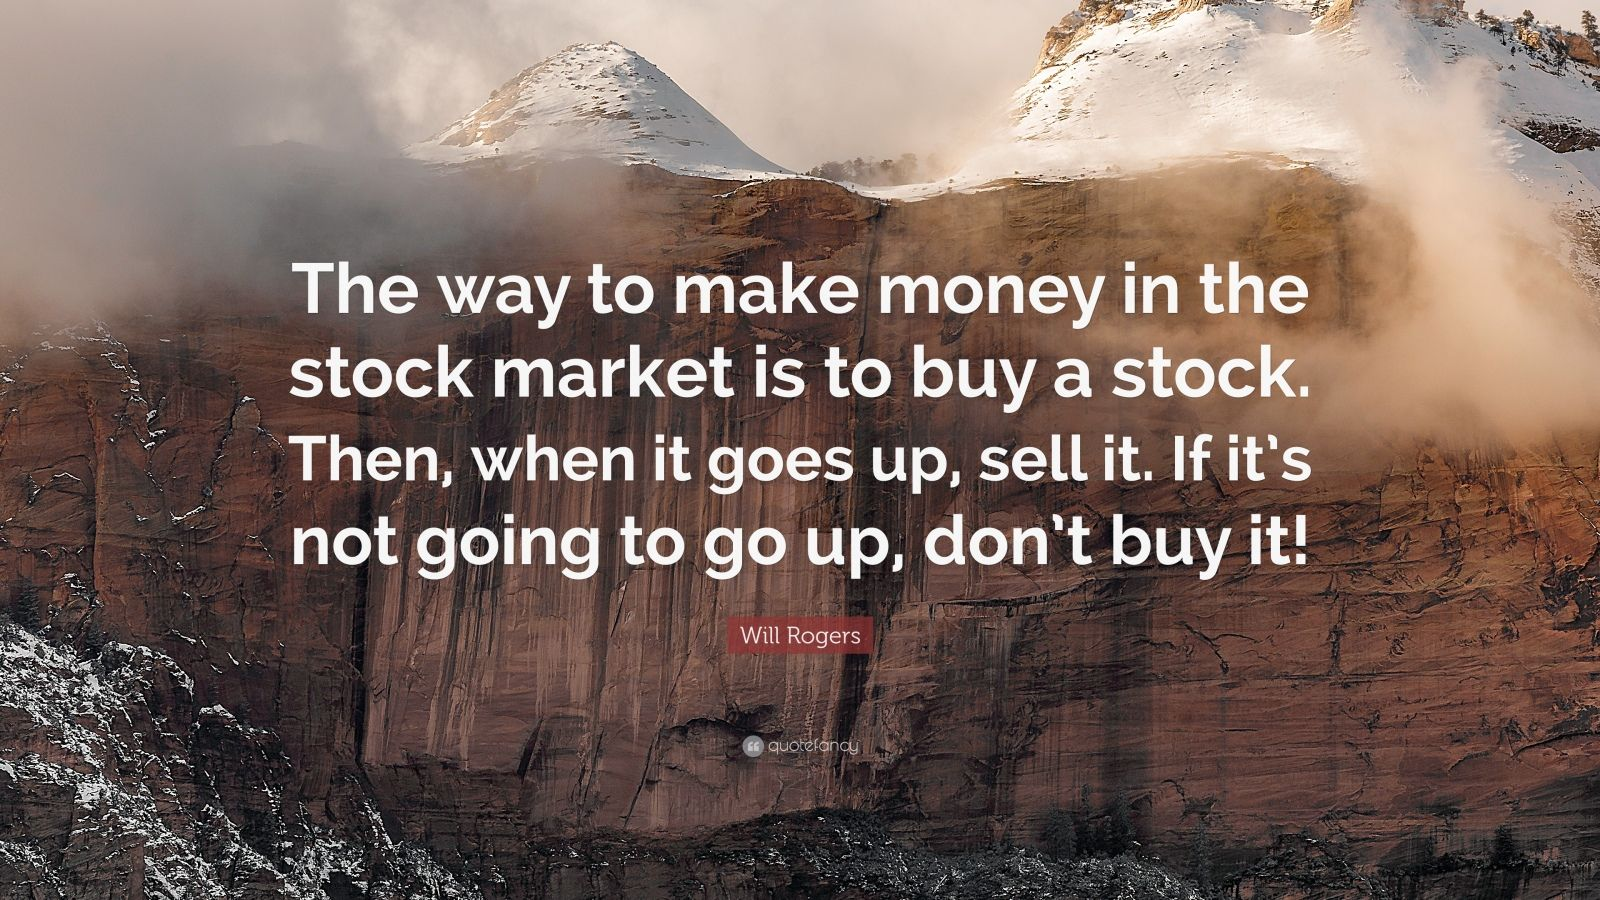 "Will Rogers Quote: ""The way to make money in the stock market is to buy a stock. Then, when it goes up, sell it. If it's not going to go up, don't buy it!"""